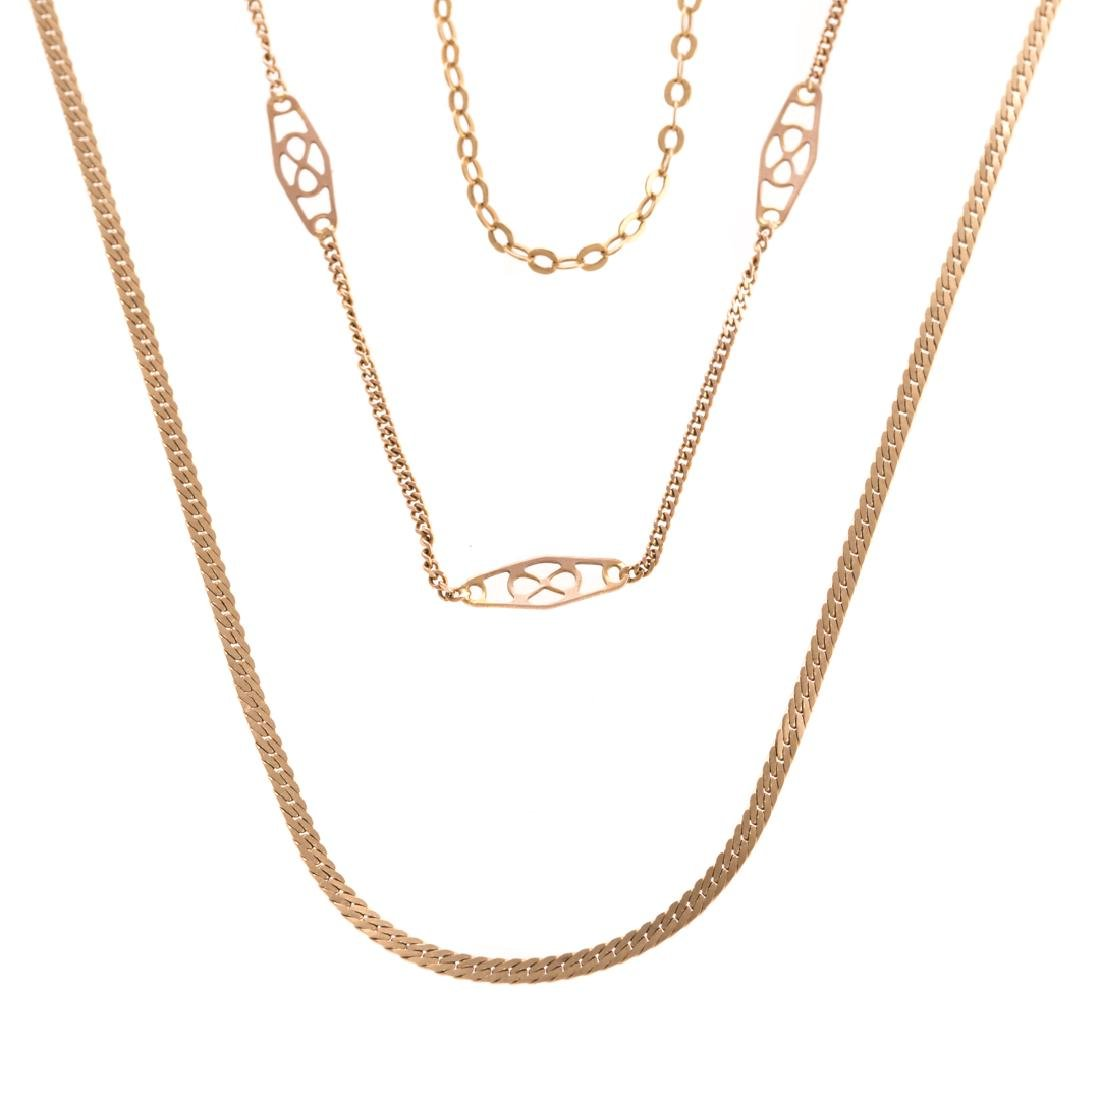 A Trio of Lady's Chain Necklaces in Gold